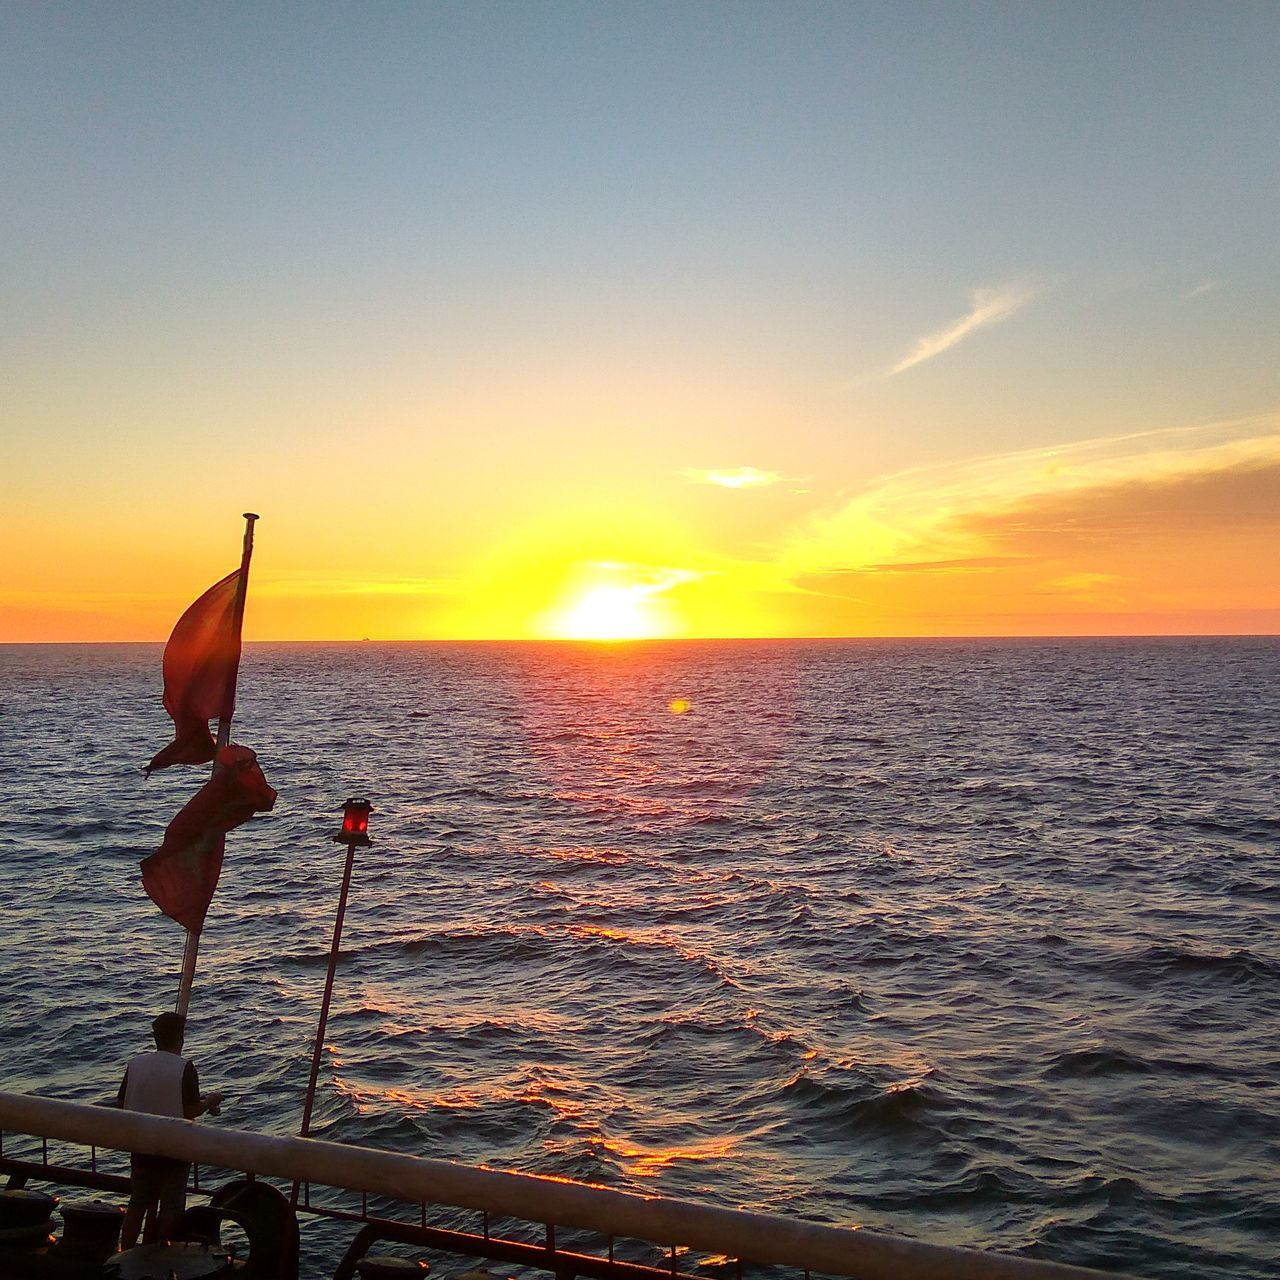 sunset, sea, water, horizon over water, beauty in nature, nature, scenics, orange color, tranquility, tranquil scene, sky, sun, outdoors, one person, weekend activities, fishing pole, vacations, men, nautical vessel, people